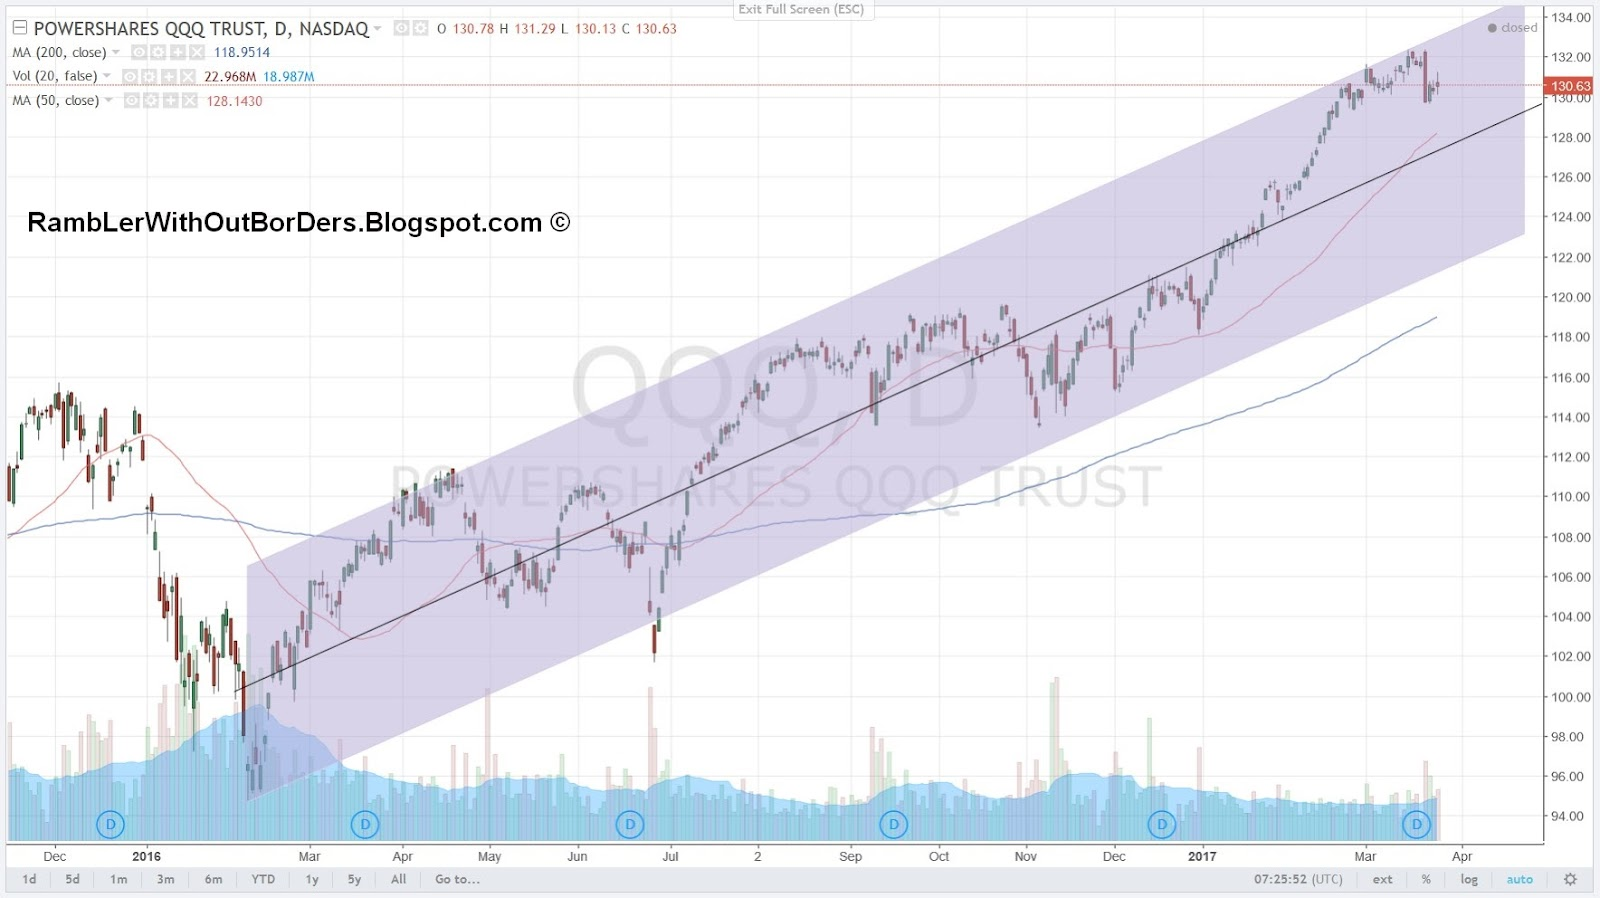 QQQ chart showing bullish trend channel as of 25 March 2017